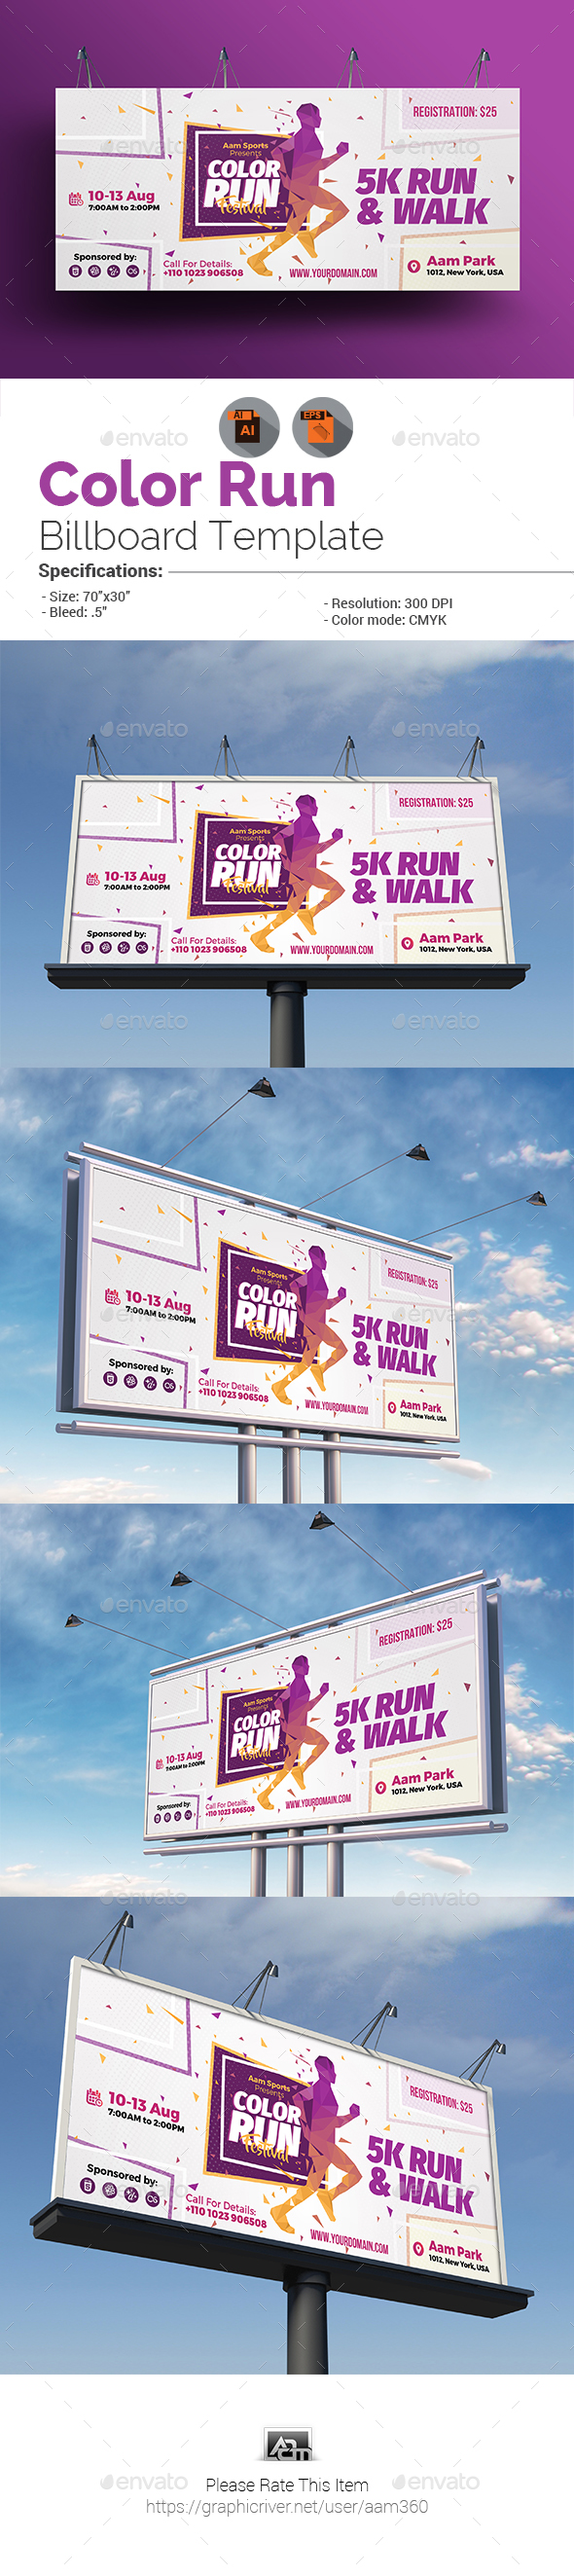 Color Run Festival Billboard Template - Signage Print Templates